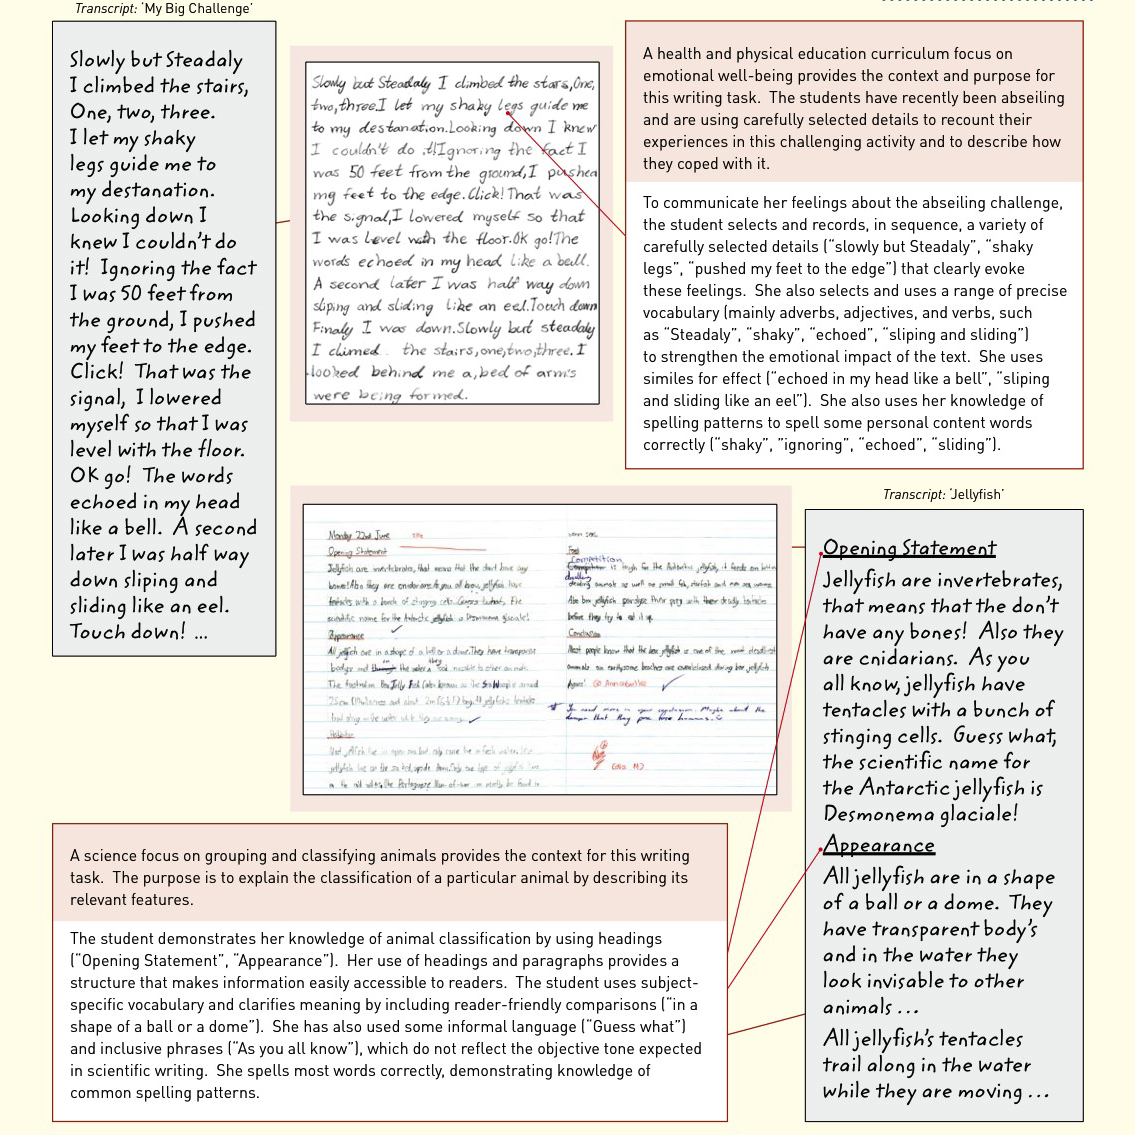 essay article difference on environment spm